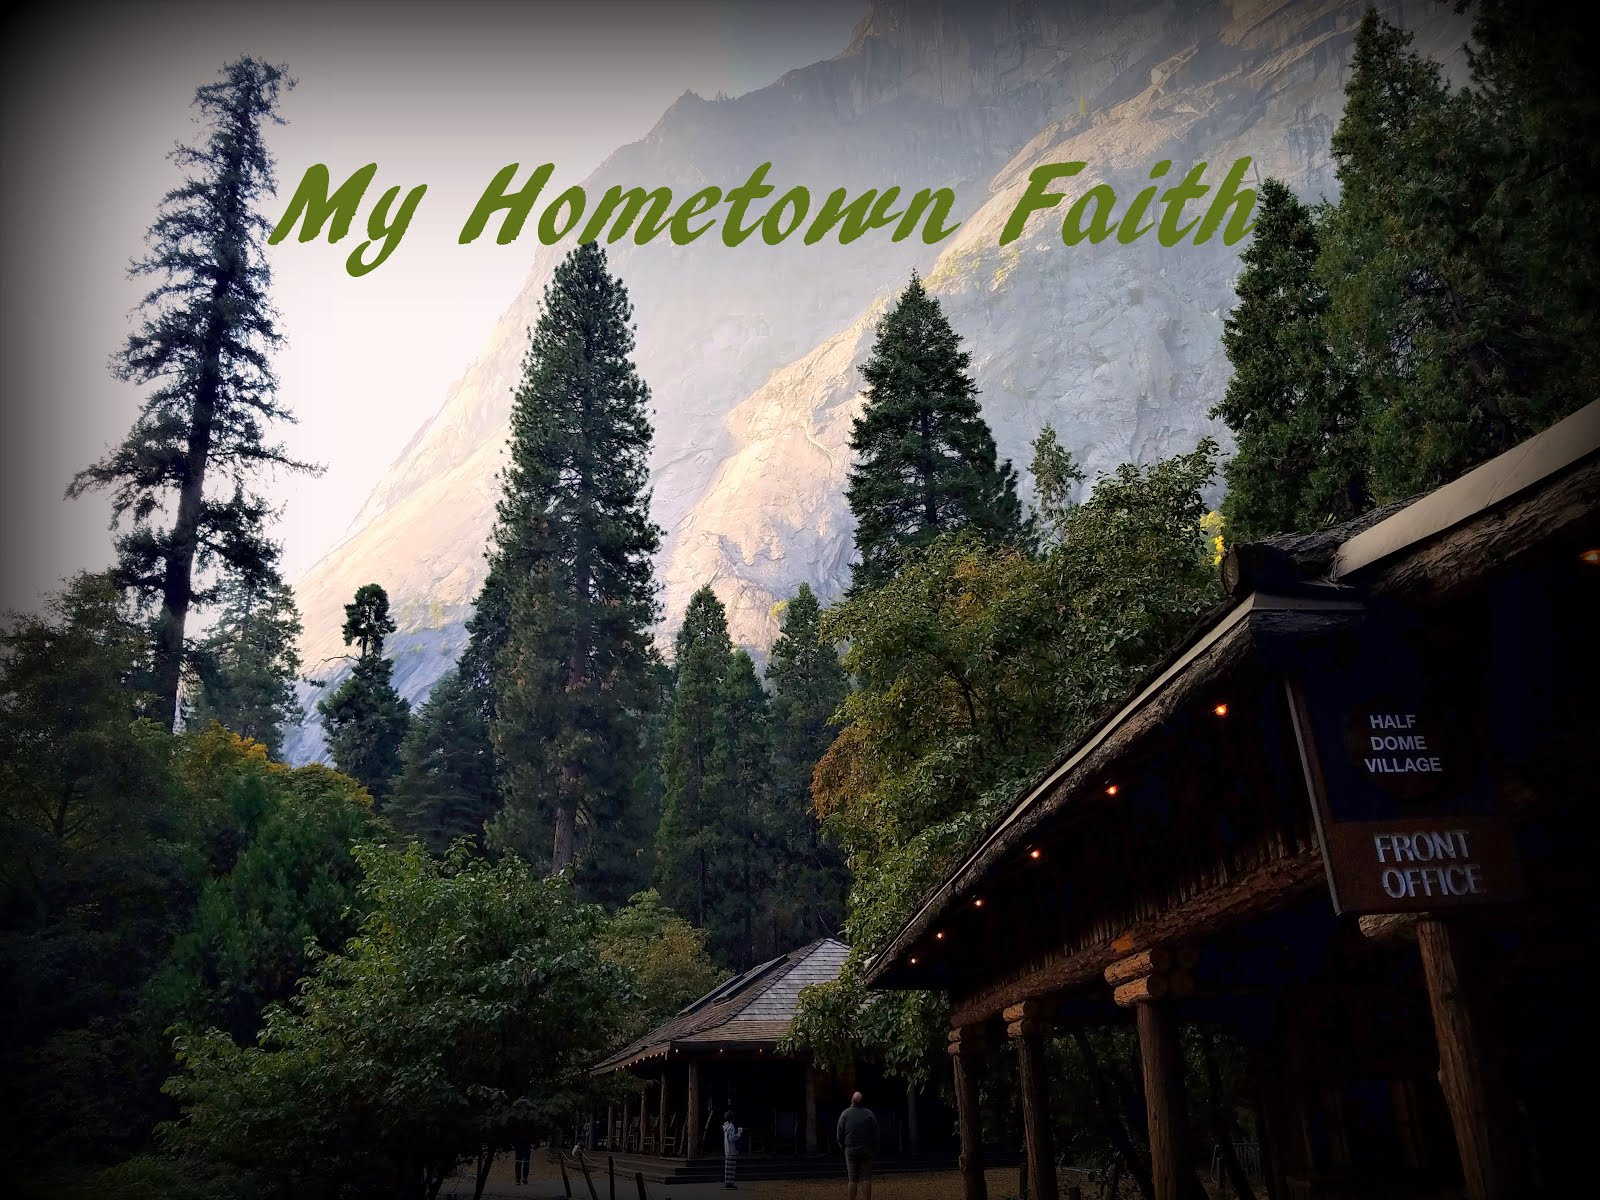 My Hometown Faith